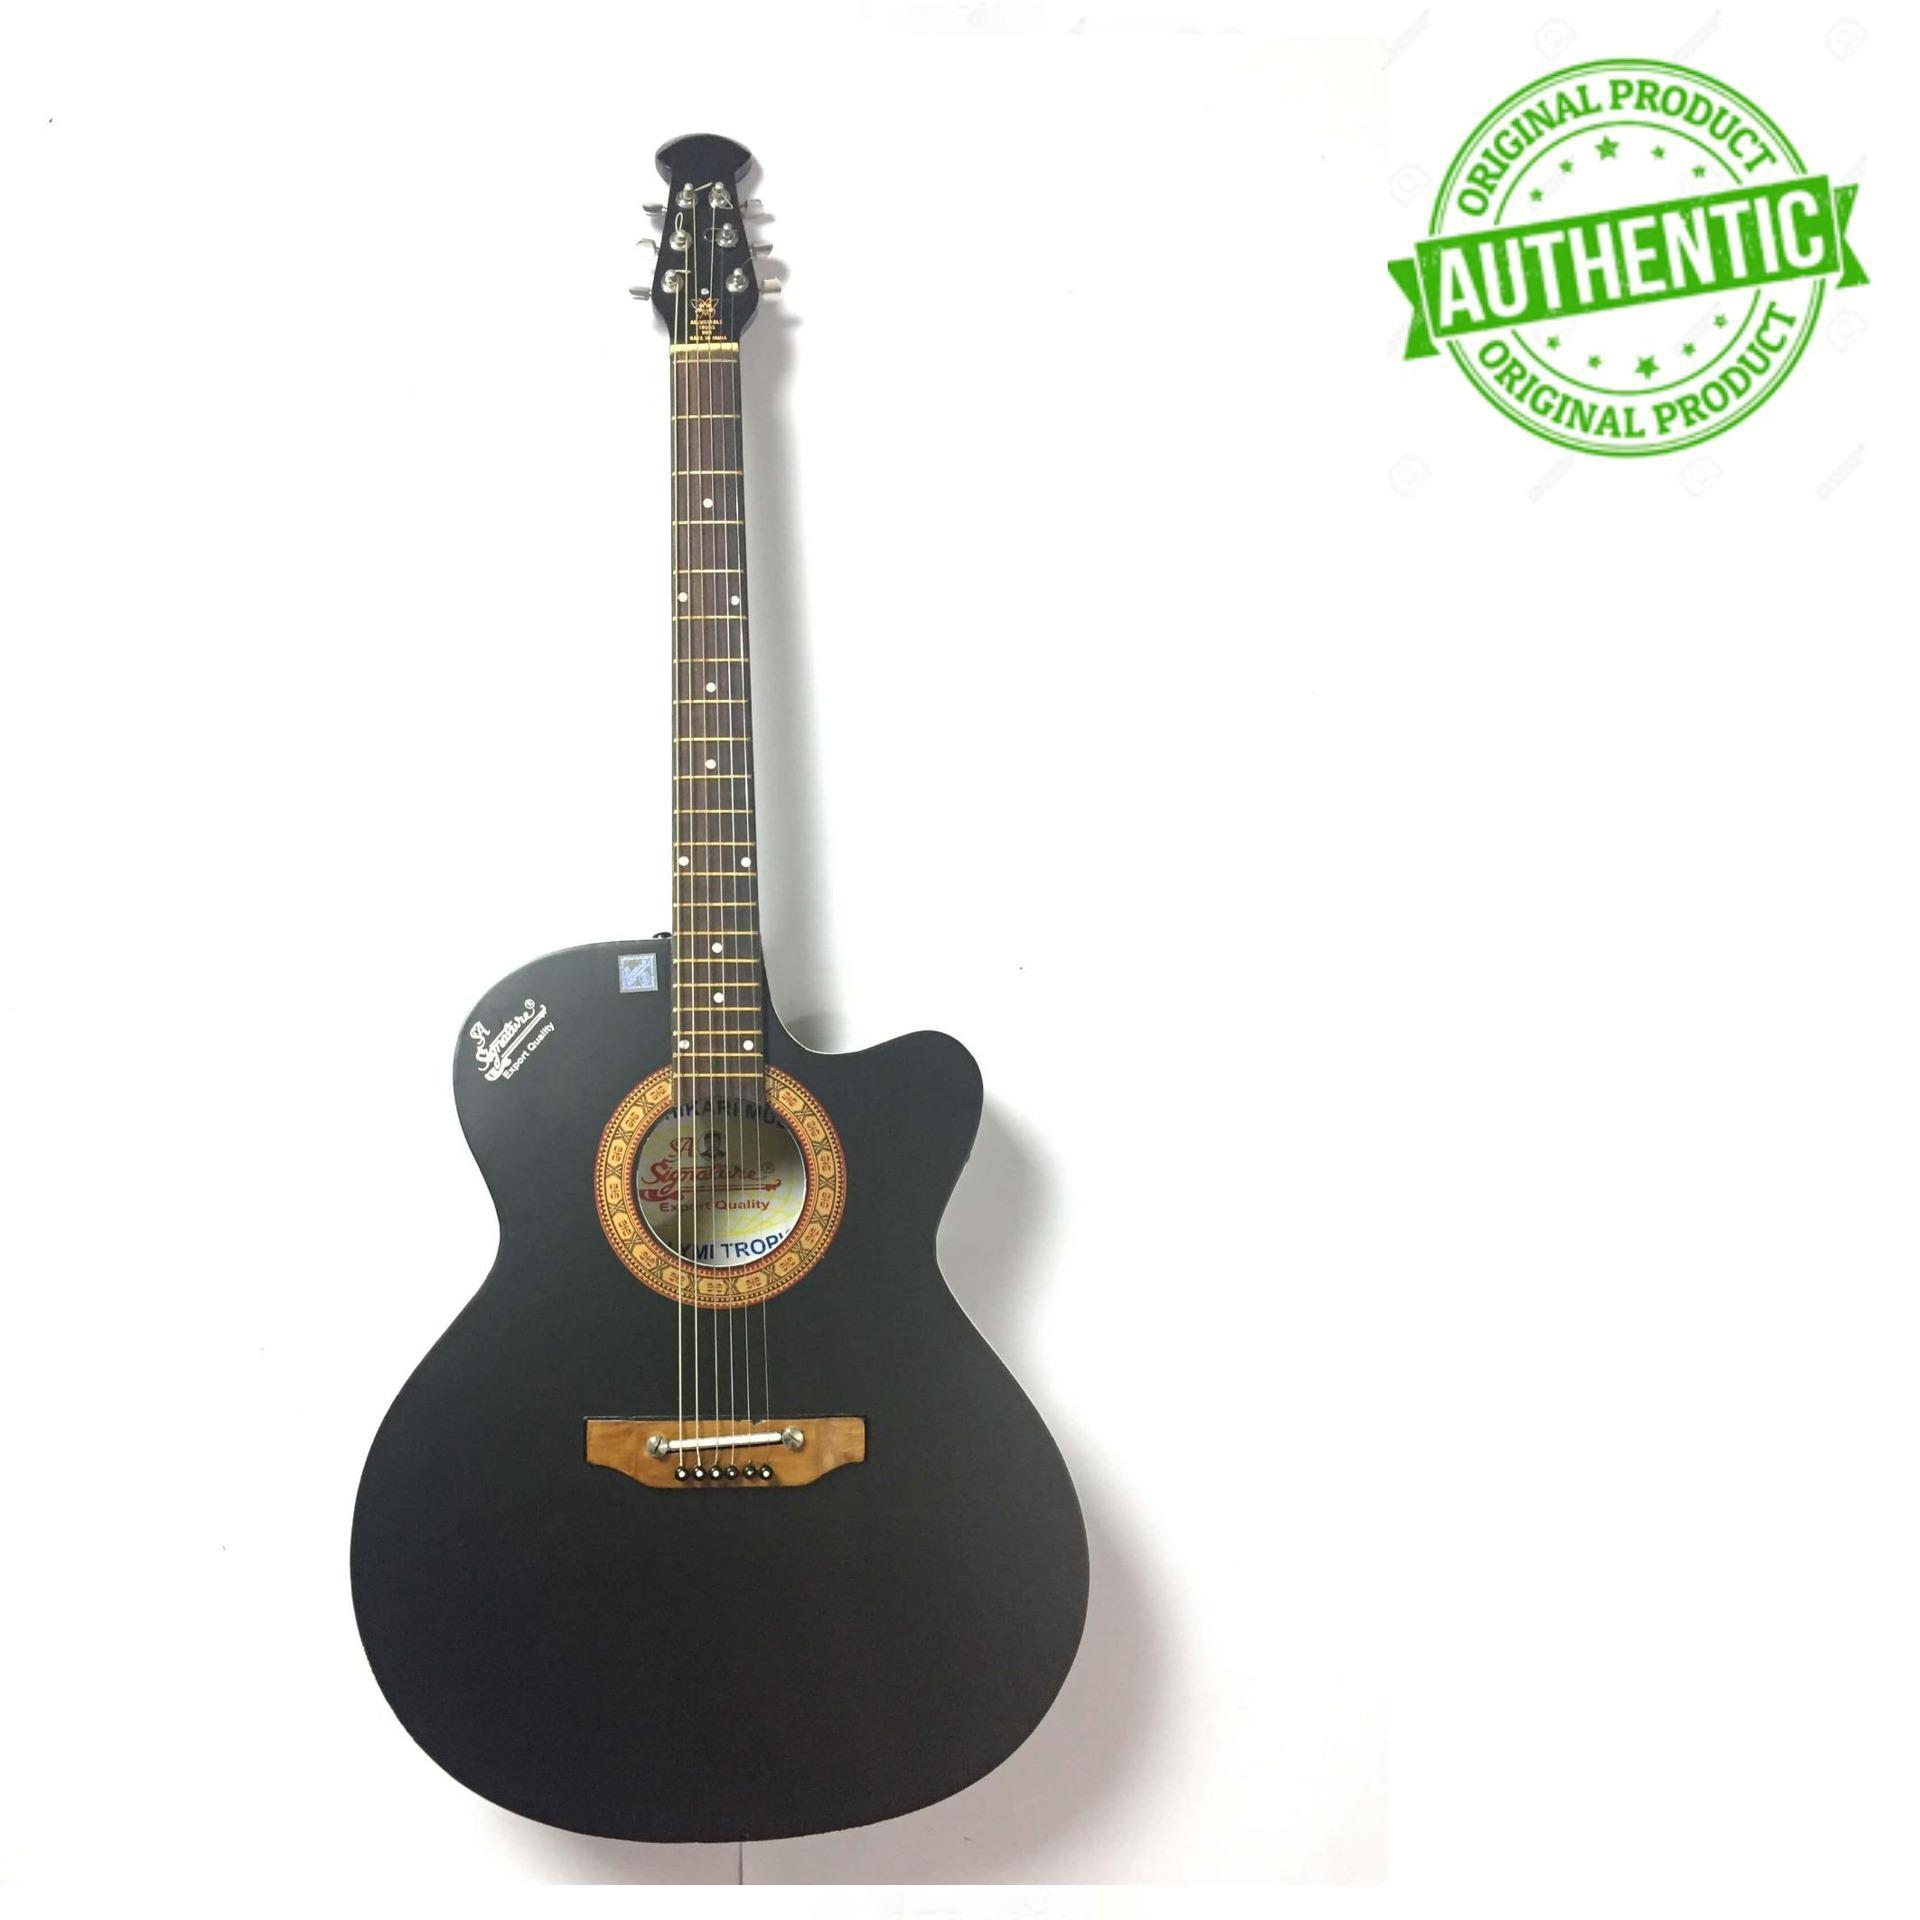 Signature New Acoustic Guitar With Electric Output - Black